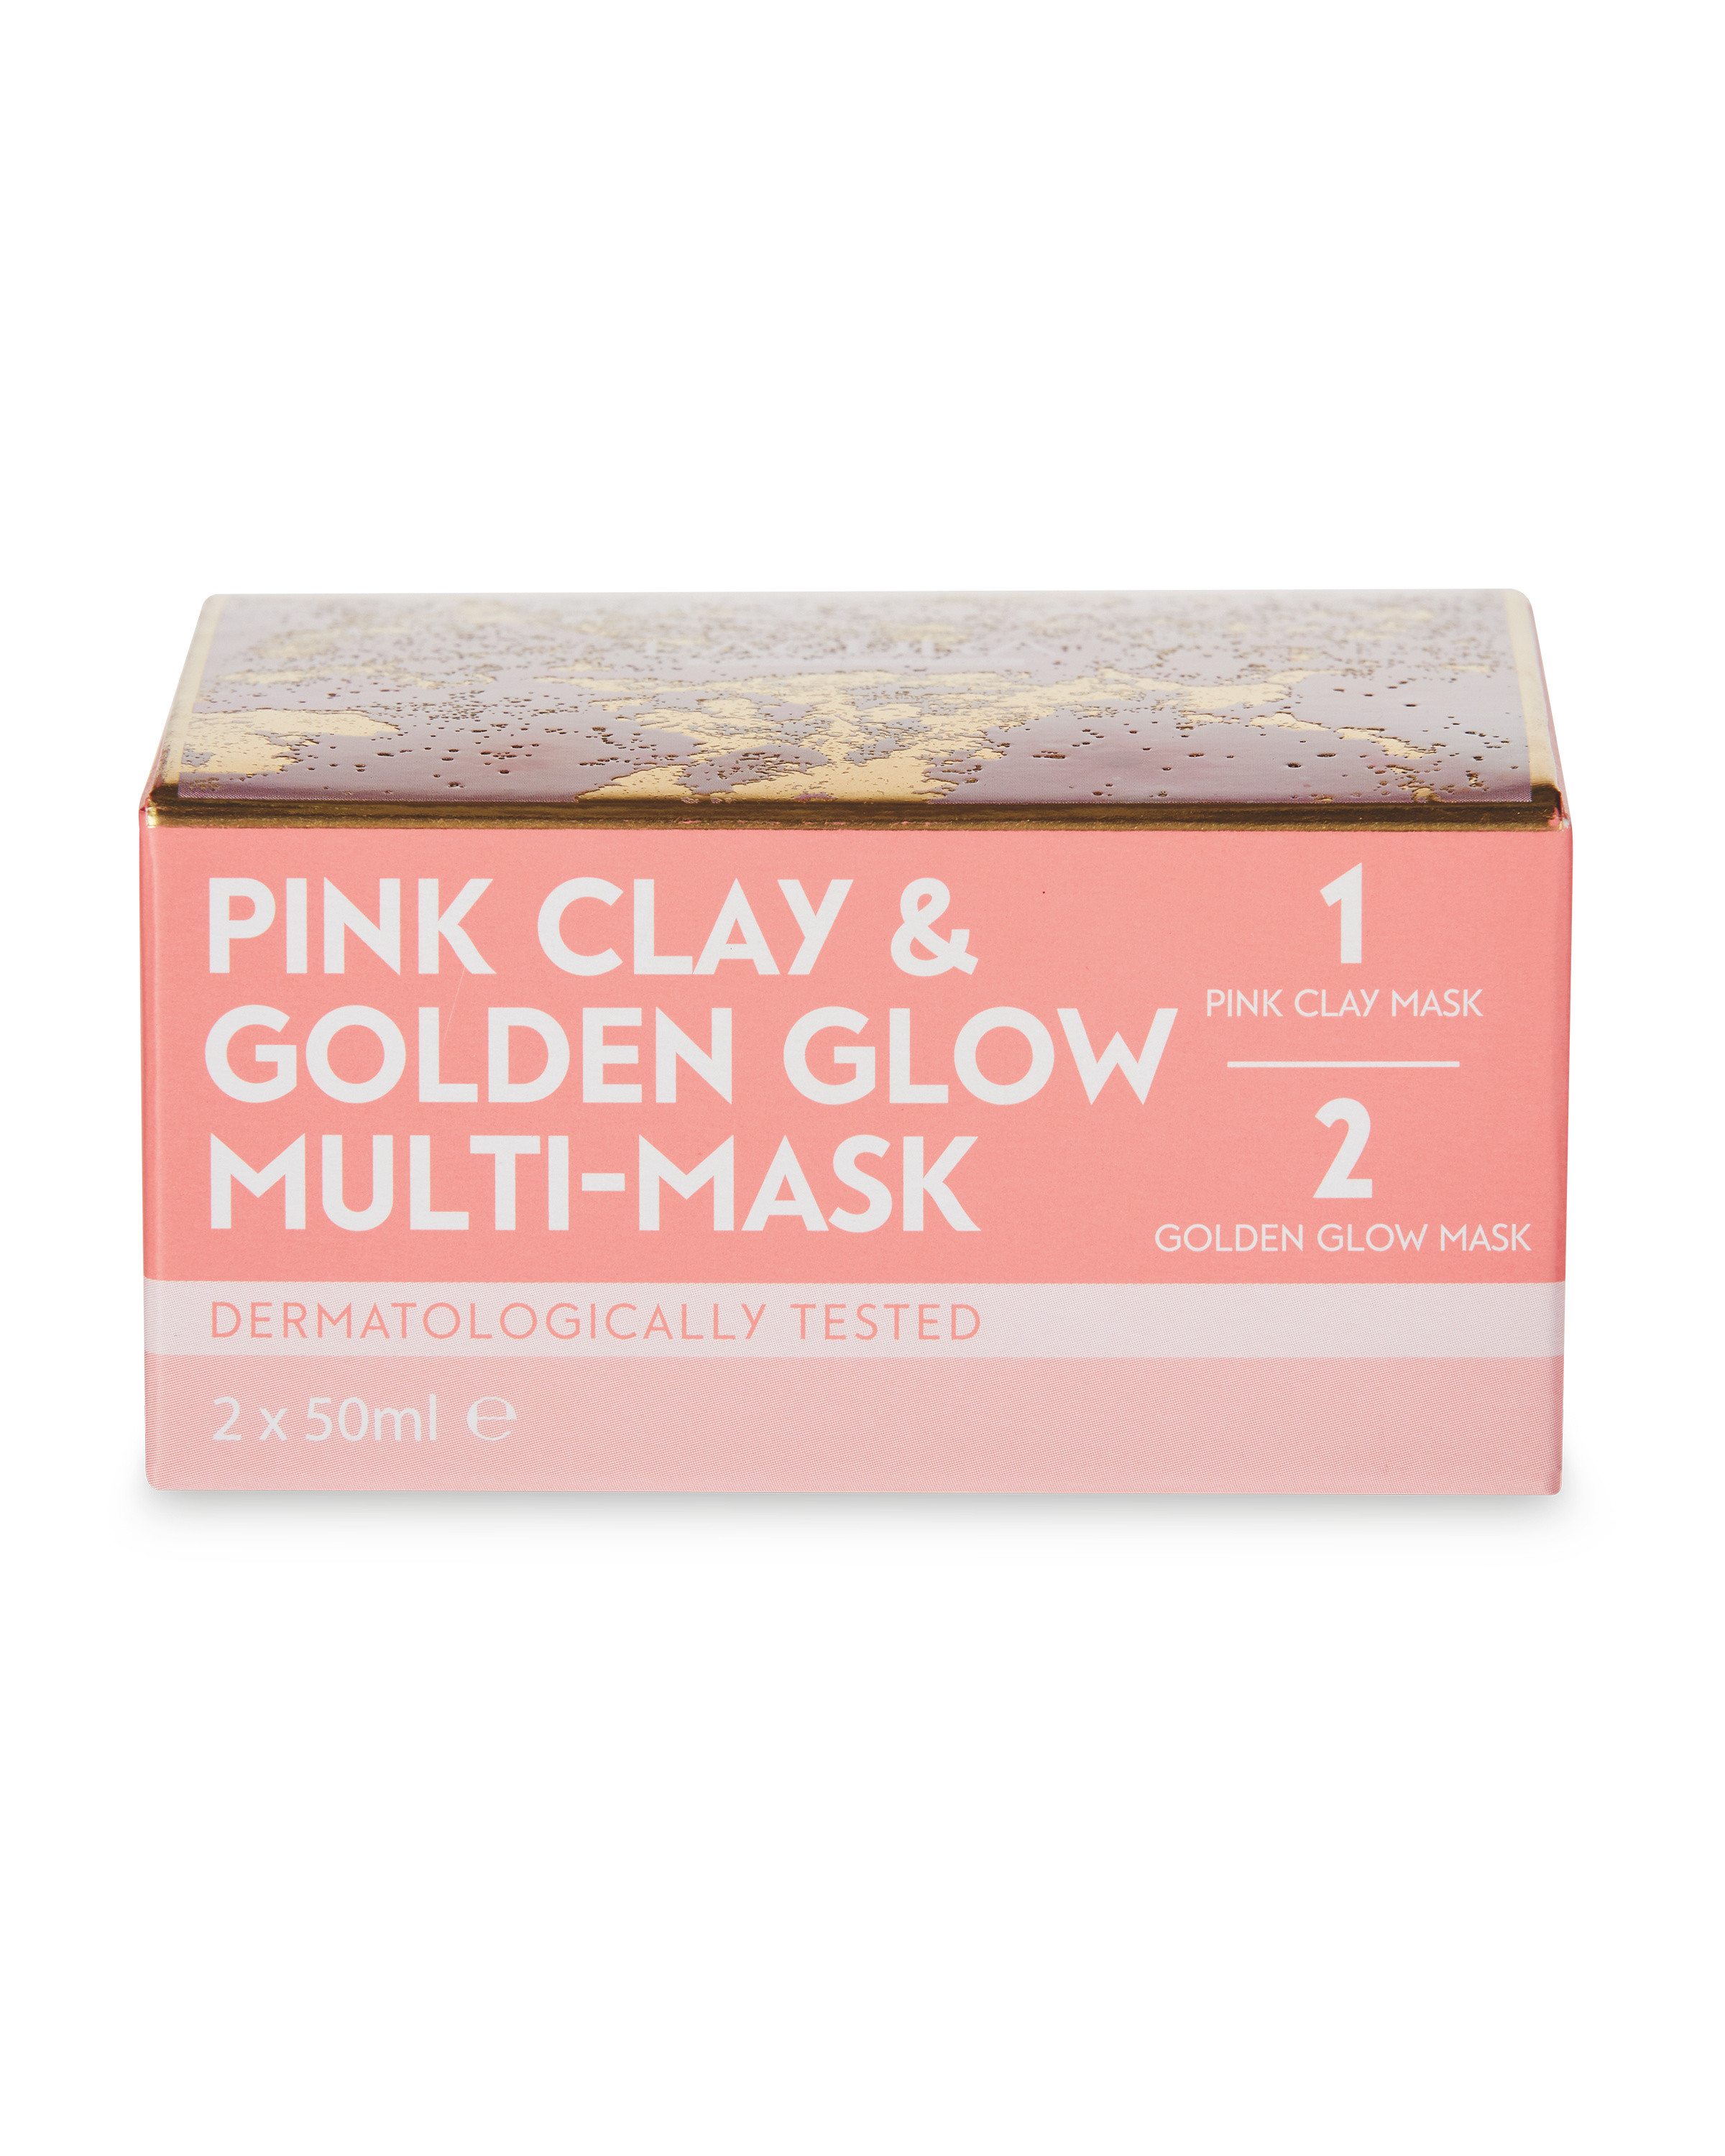 Lacura Pink Clay Golden Glow Mask